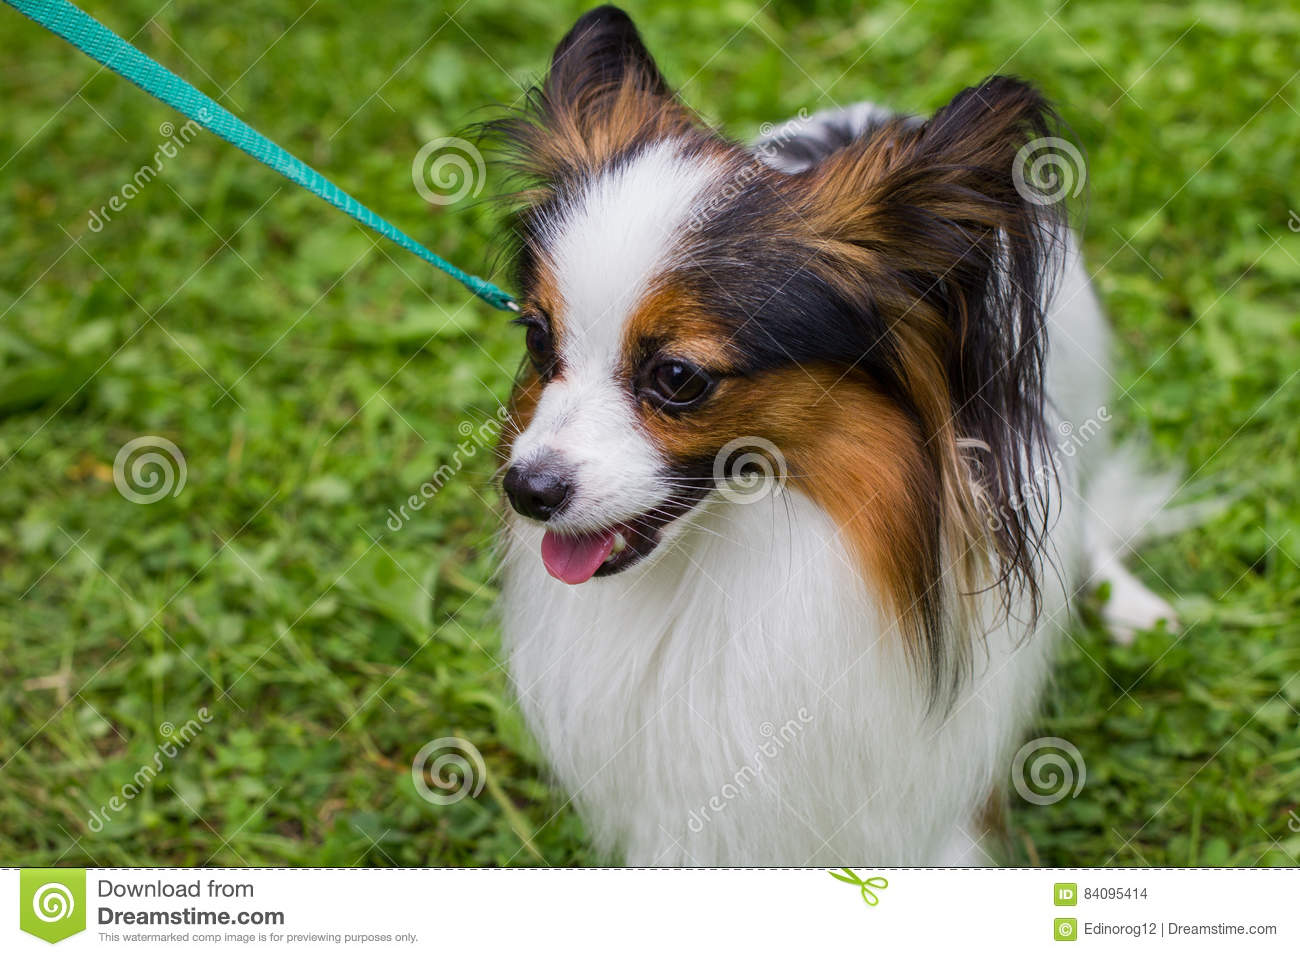 The Papillon dog is on the green grass.